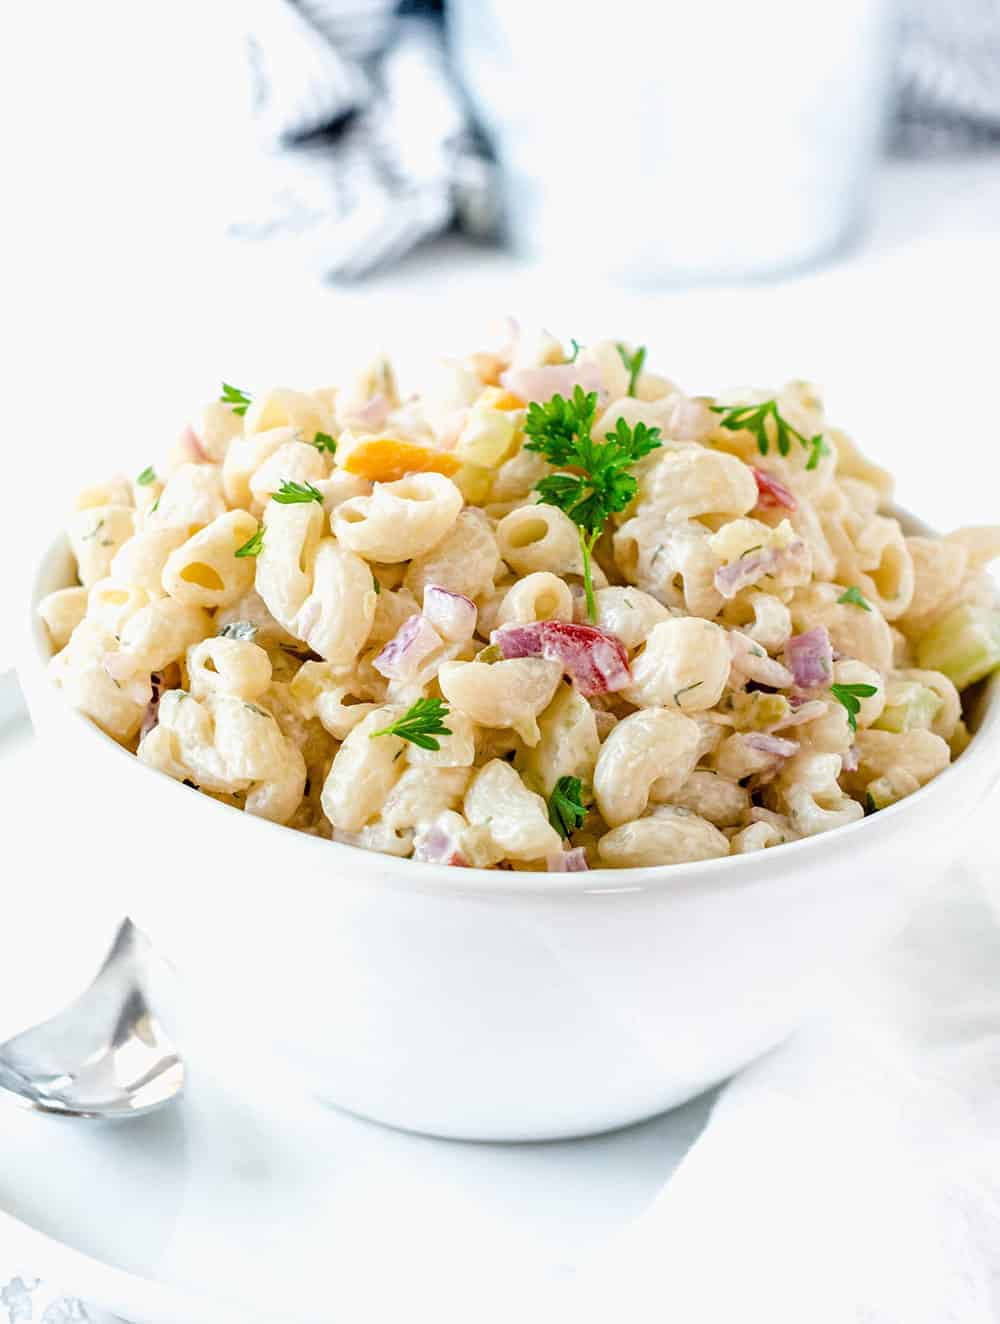 Vegan macaroni salad with red onions, parsley in a white bowl